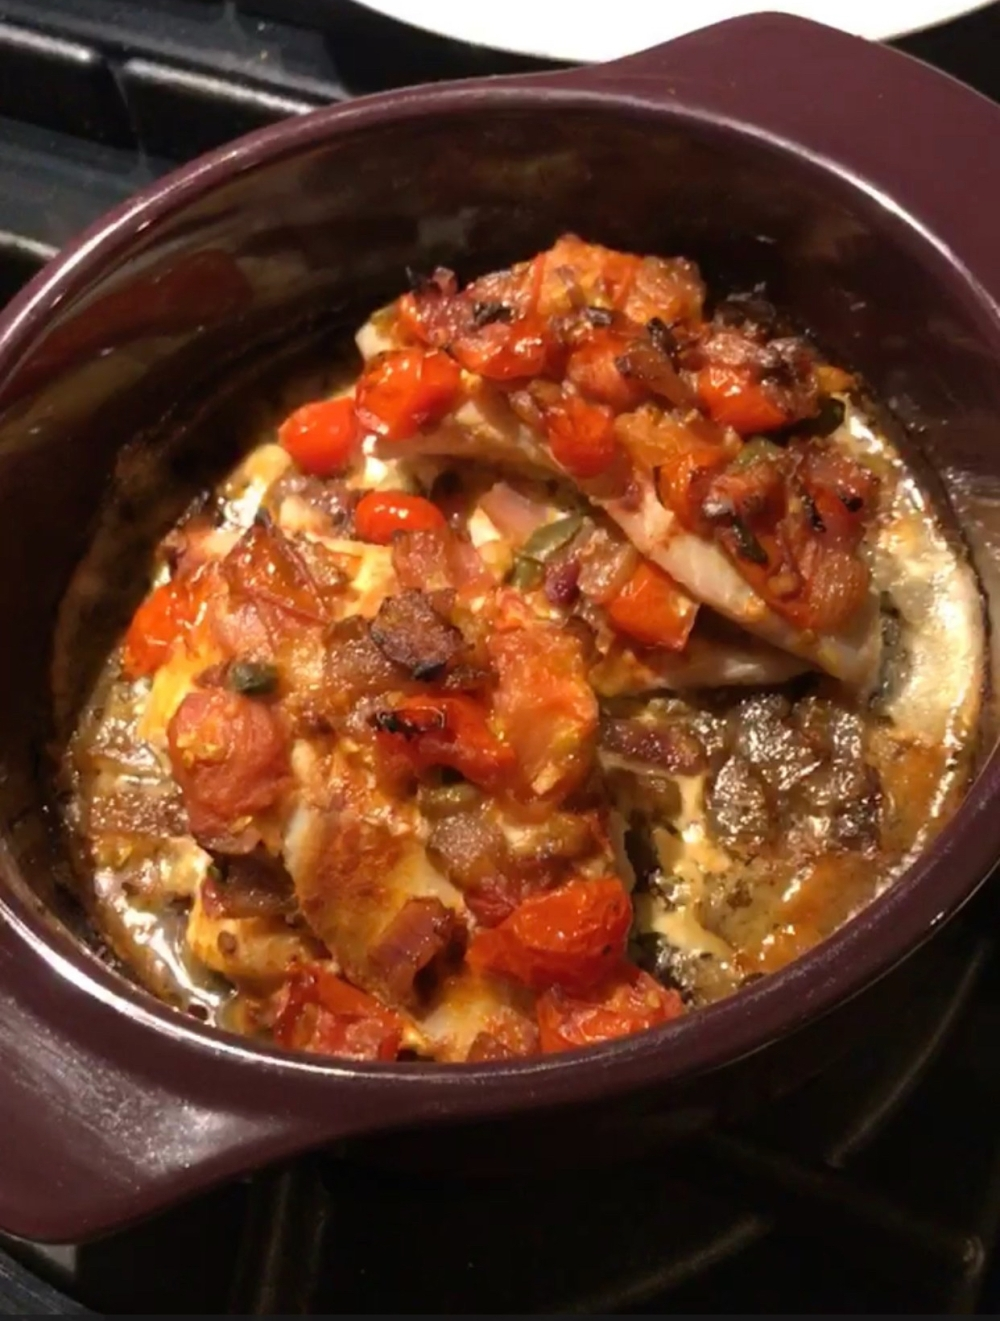 Baked Red Snapper Veracruz Style